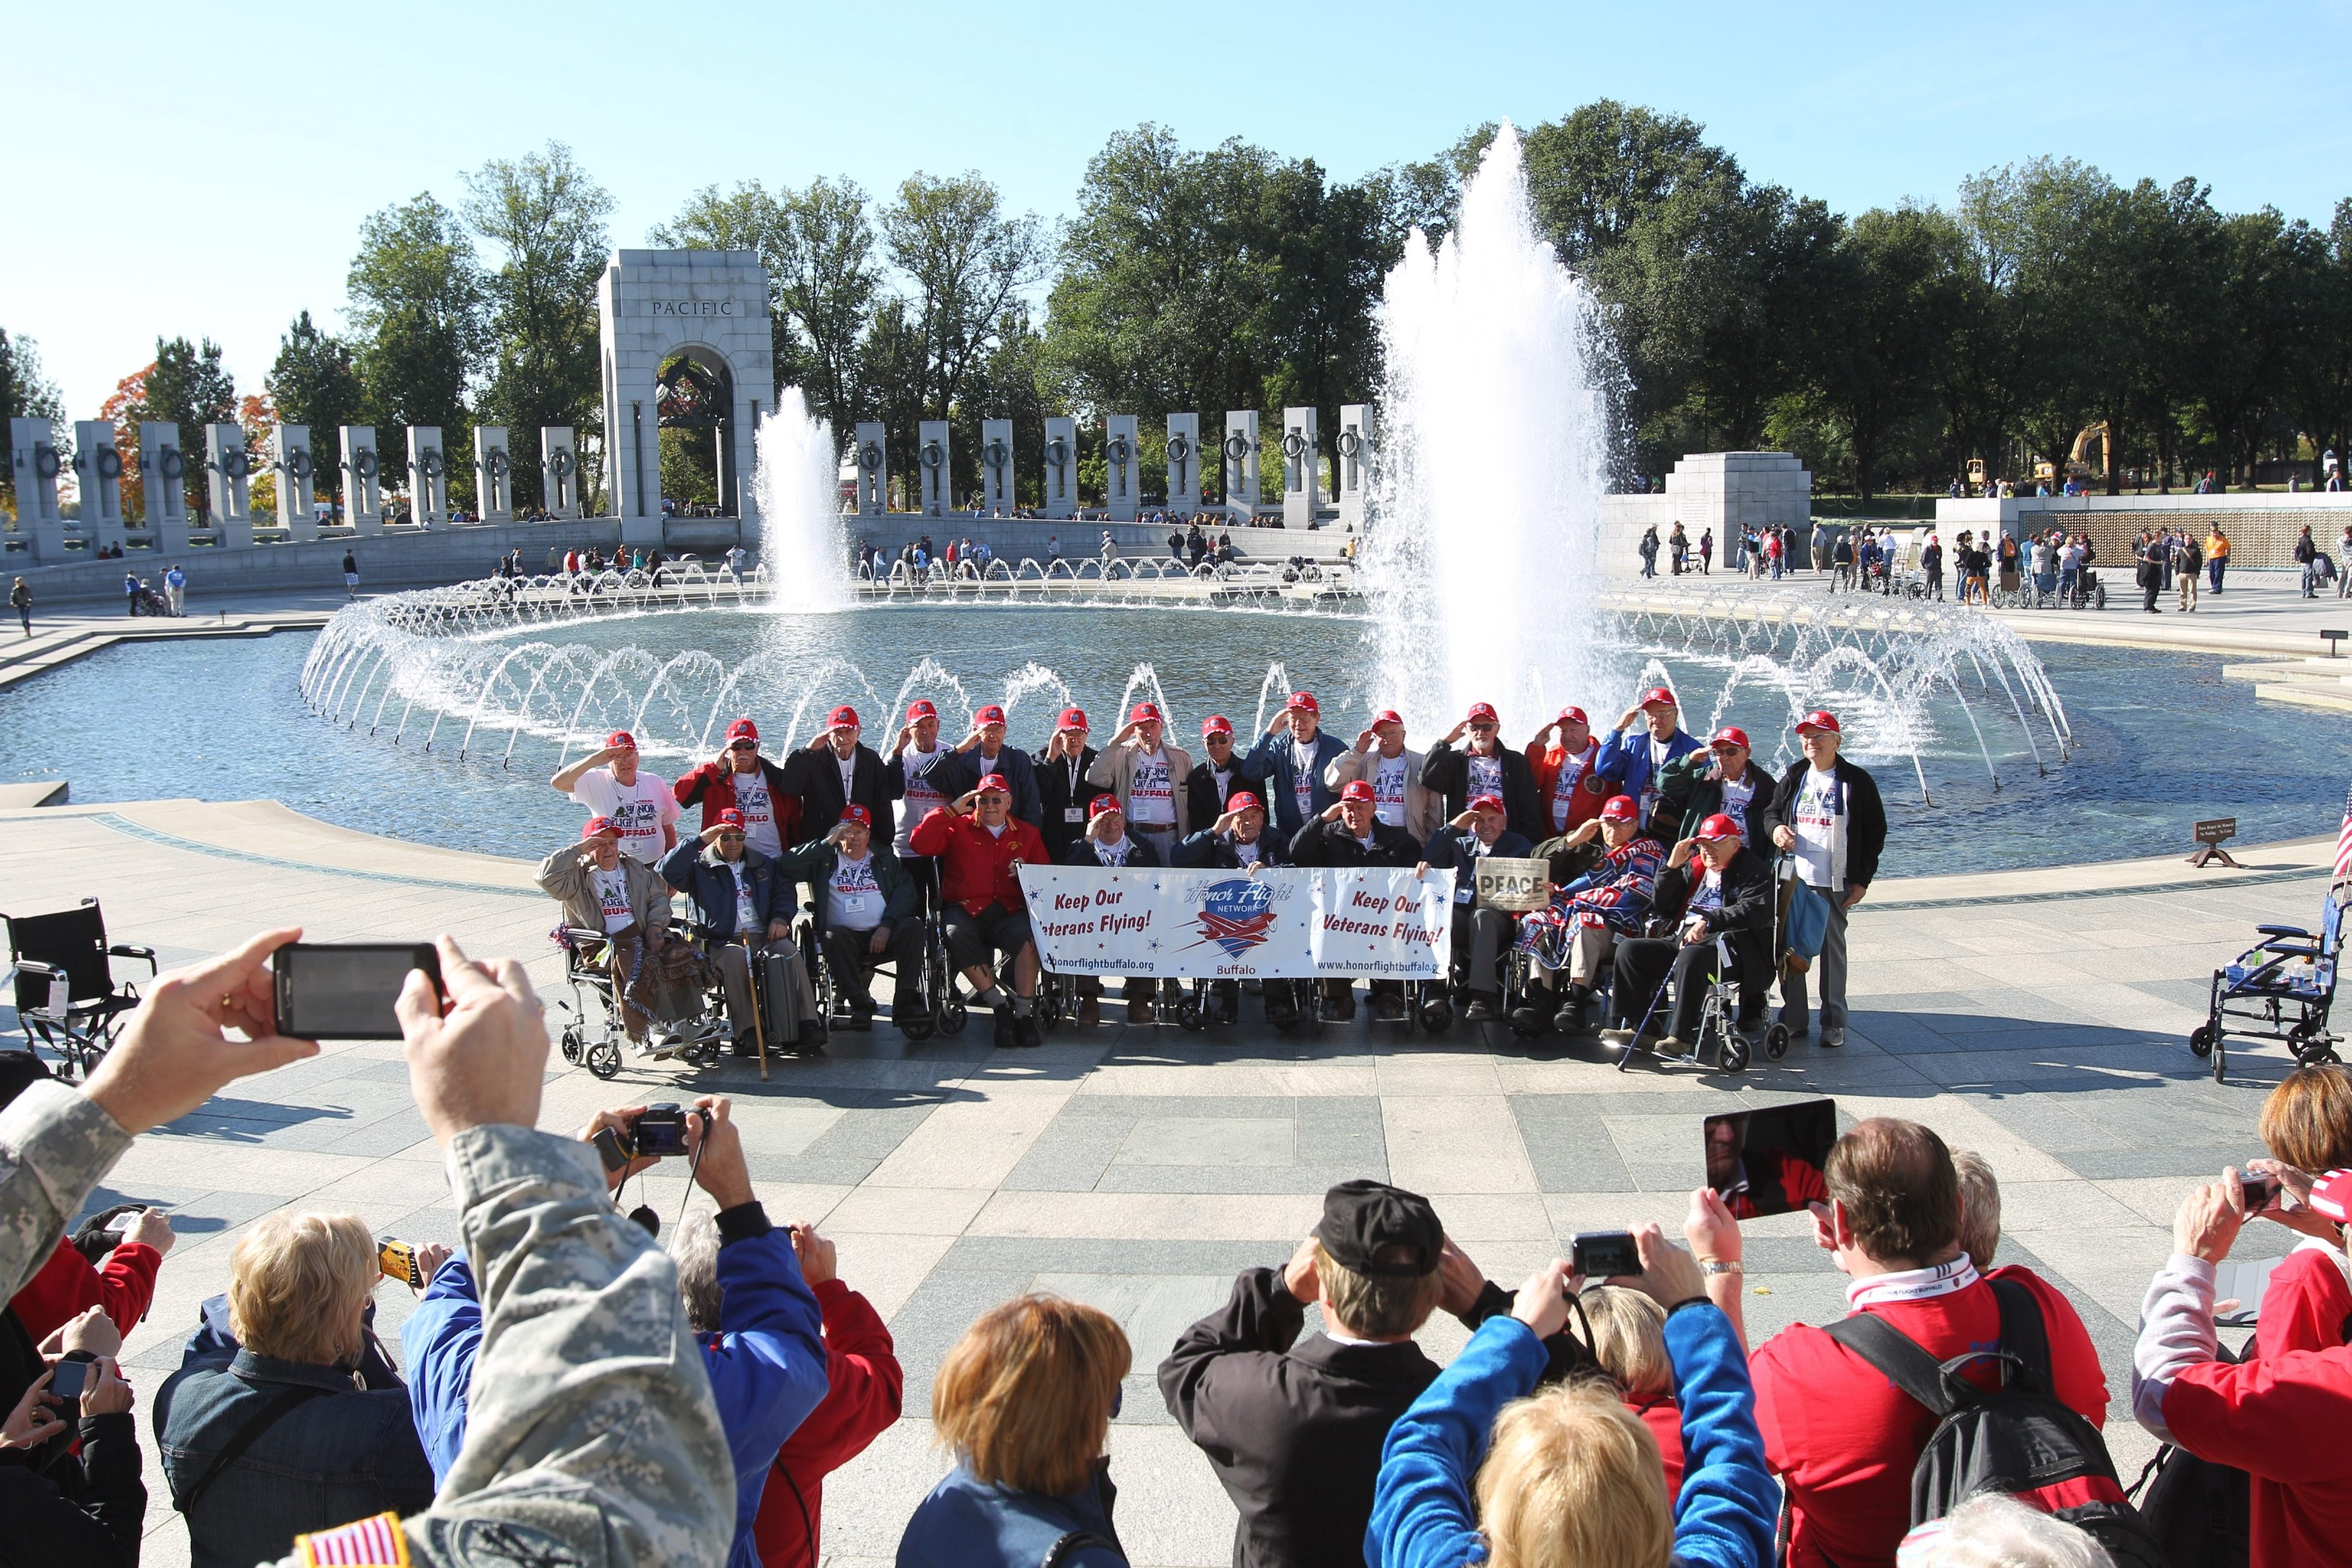 World War II veterans were taken to see the World War II Memorial as well as other memorials on a one-day trip with Honor Flight to Washington D.C., on Oct. 13, 2012. Family and friends accompanying the vets get the group photo at the WWII memorial.